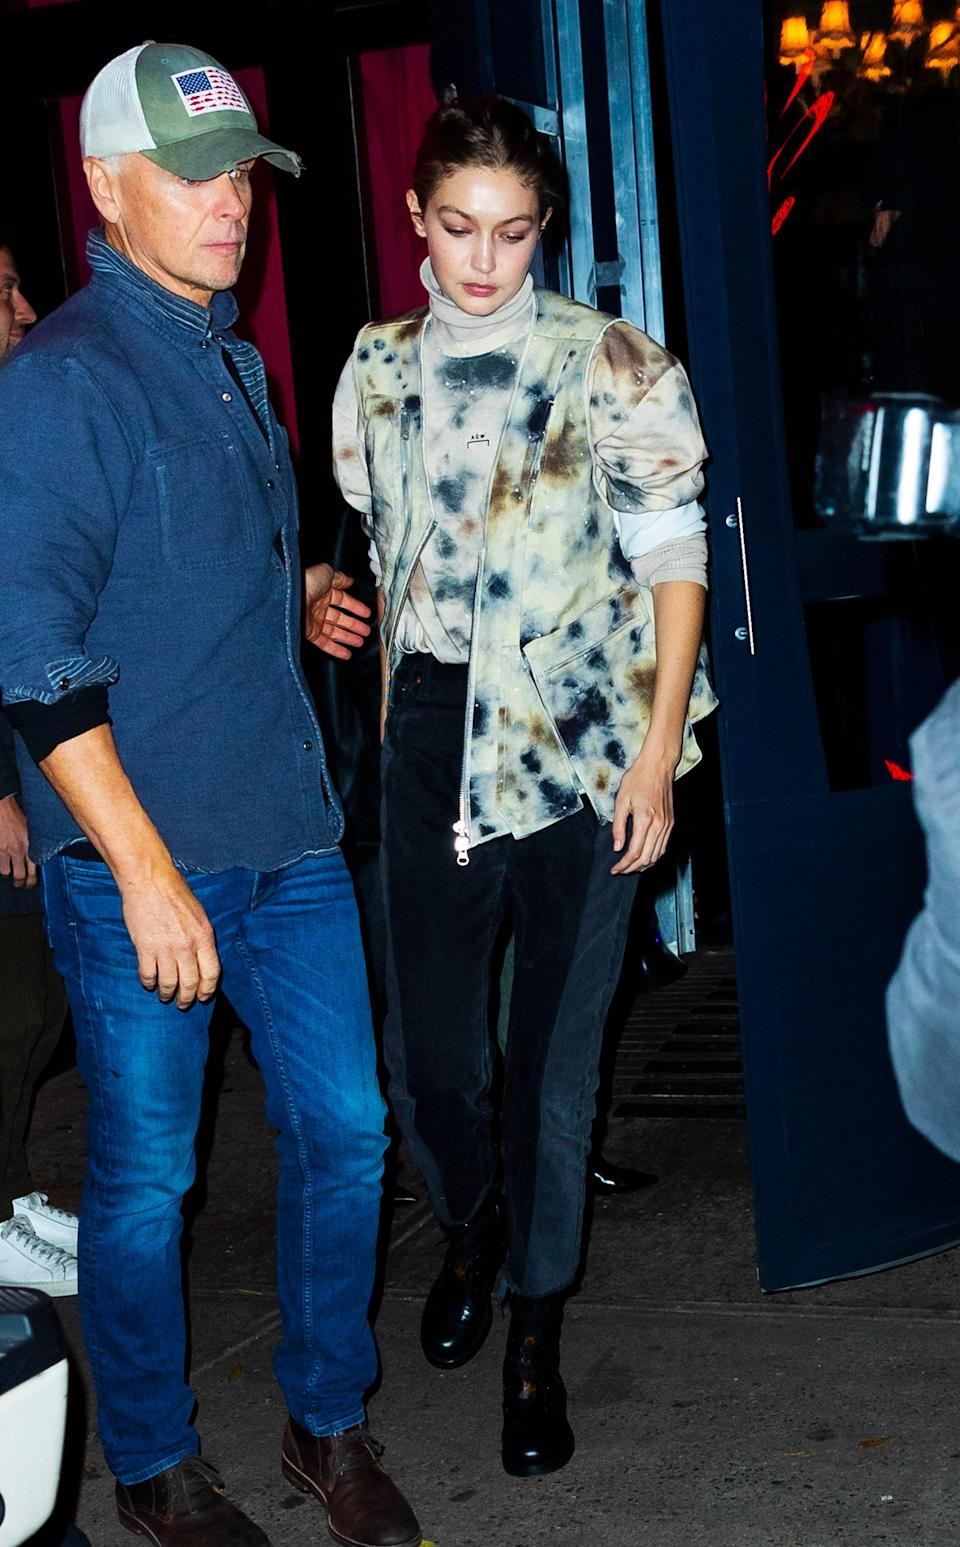 She stepped out for a casual sinner in NYC wearing an elevated take on tie-dye.